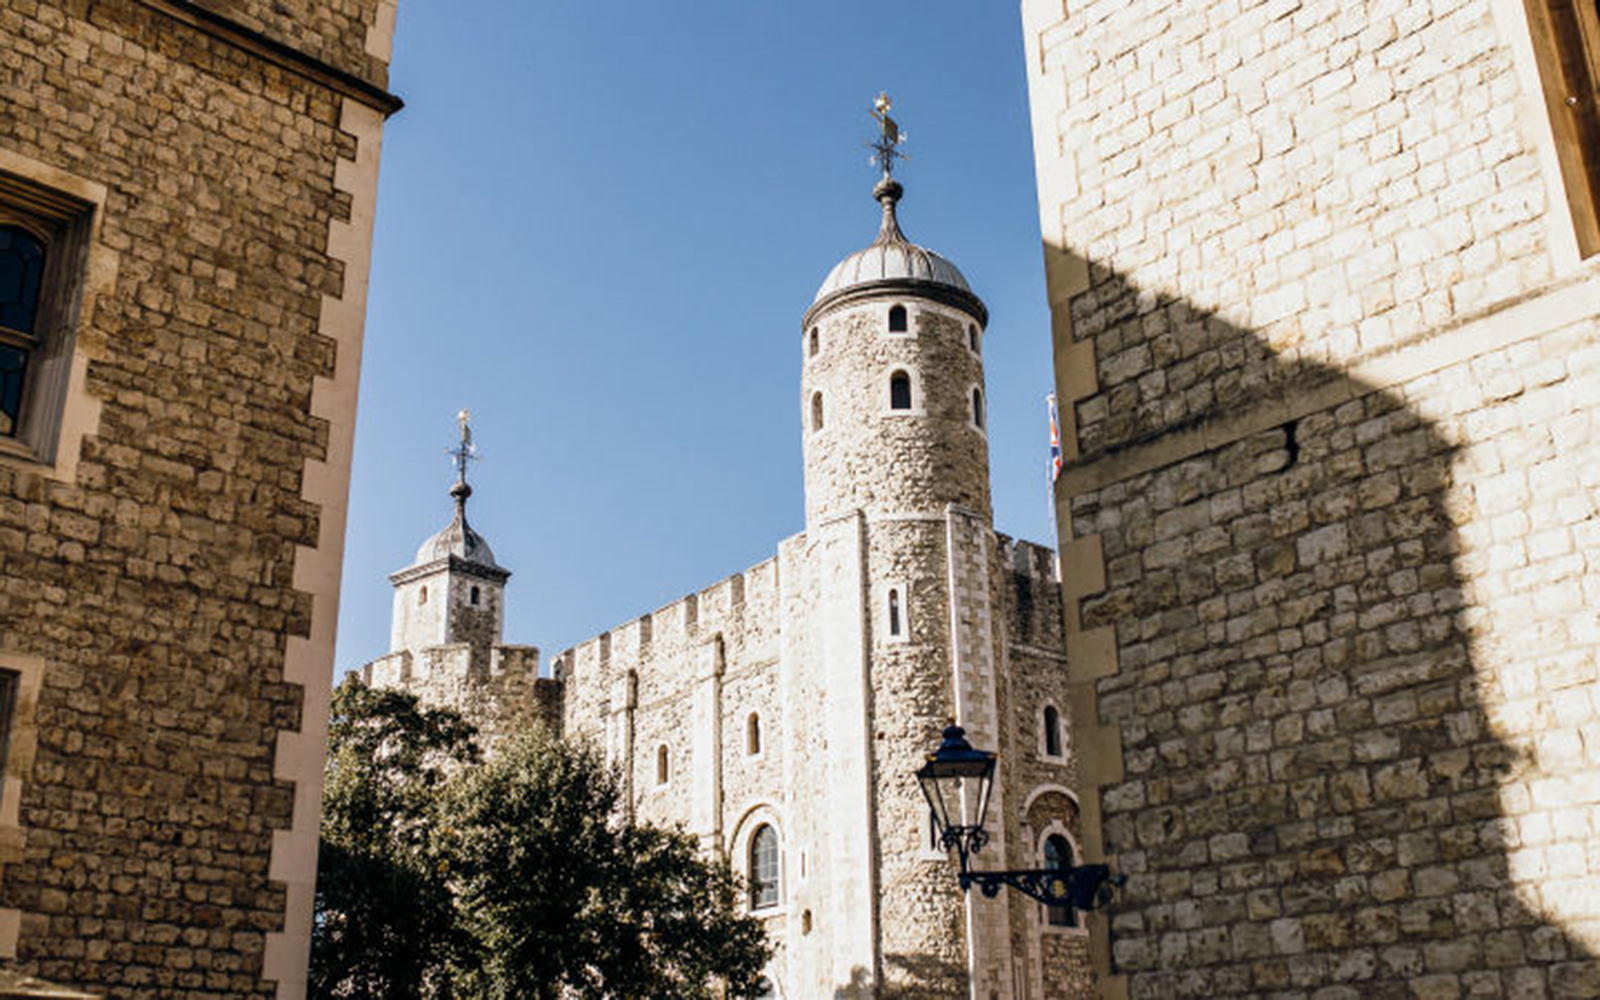 Finding The Right Tower of London Guided Tour For You